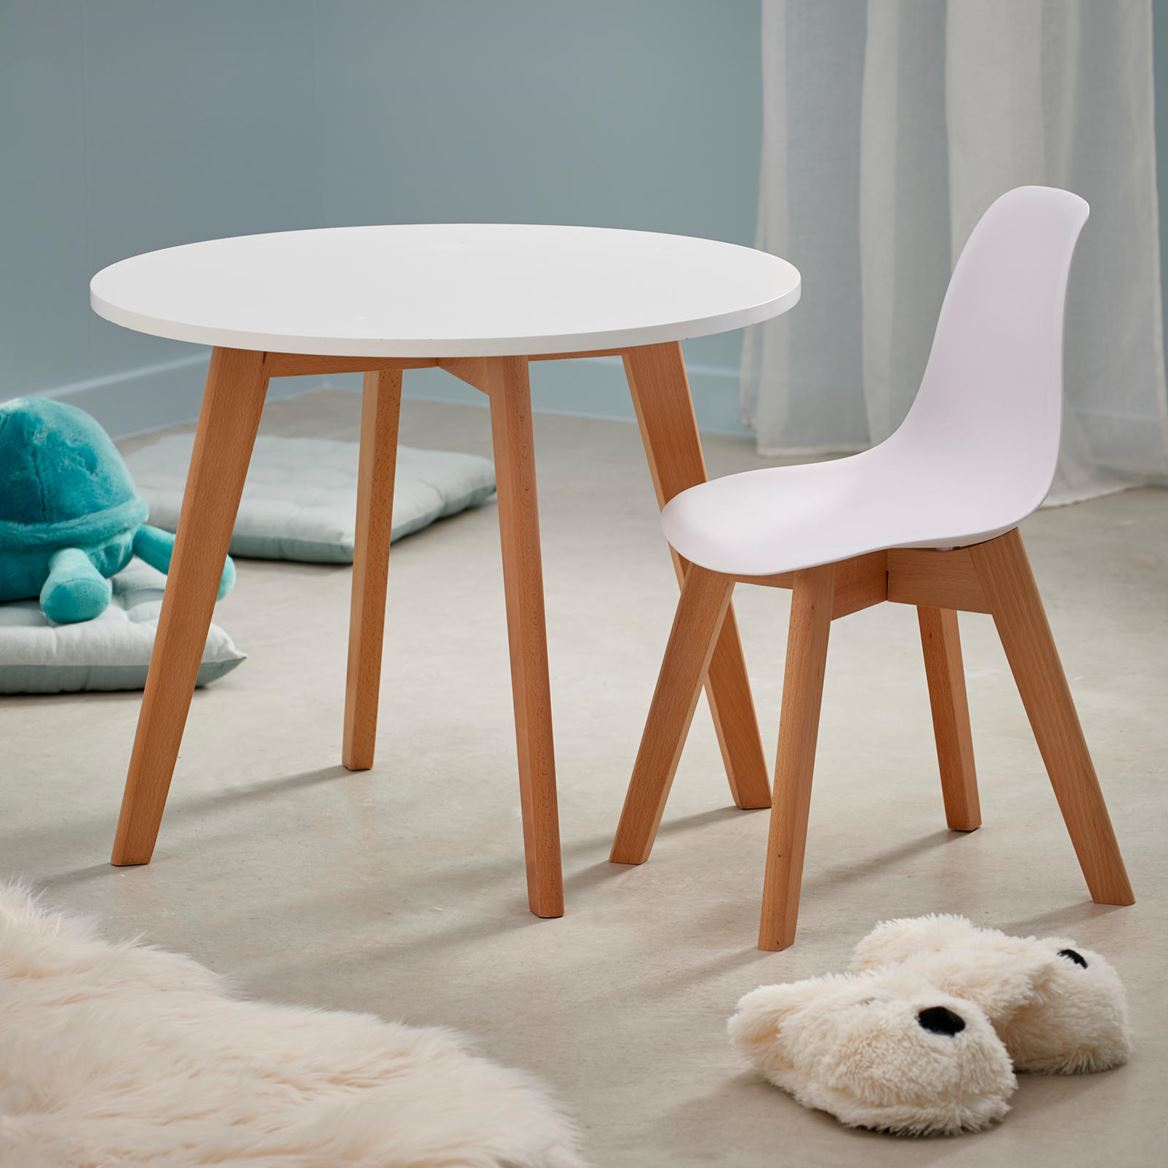 MATHIAS Table pour enfants blanc H 49 cm; Ø 60 cm_mathias-table-pour-enfants-blanc-h-49-cm;-ø-60-cm